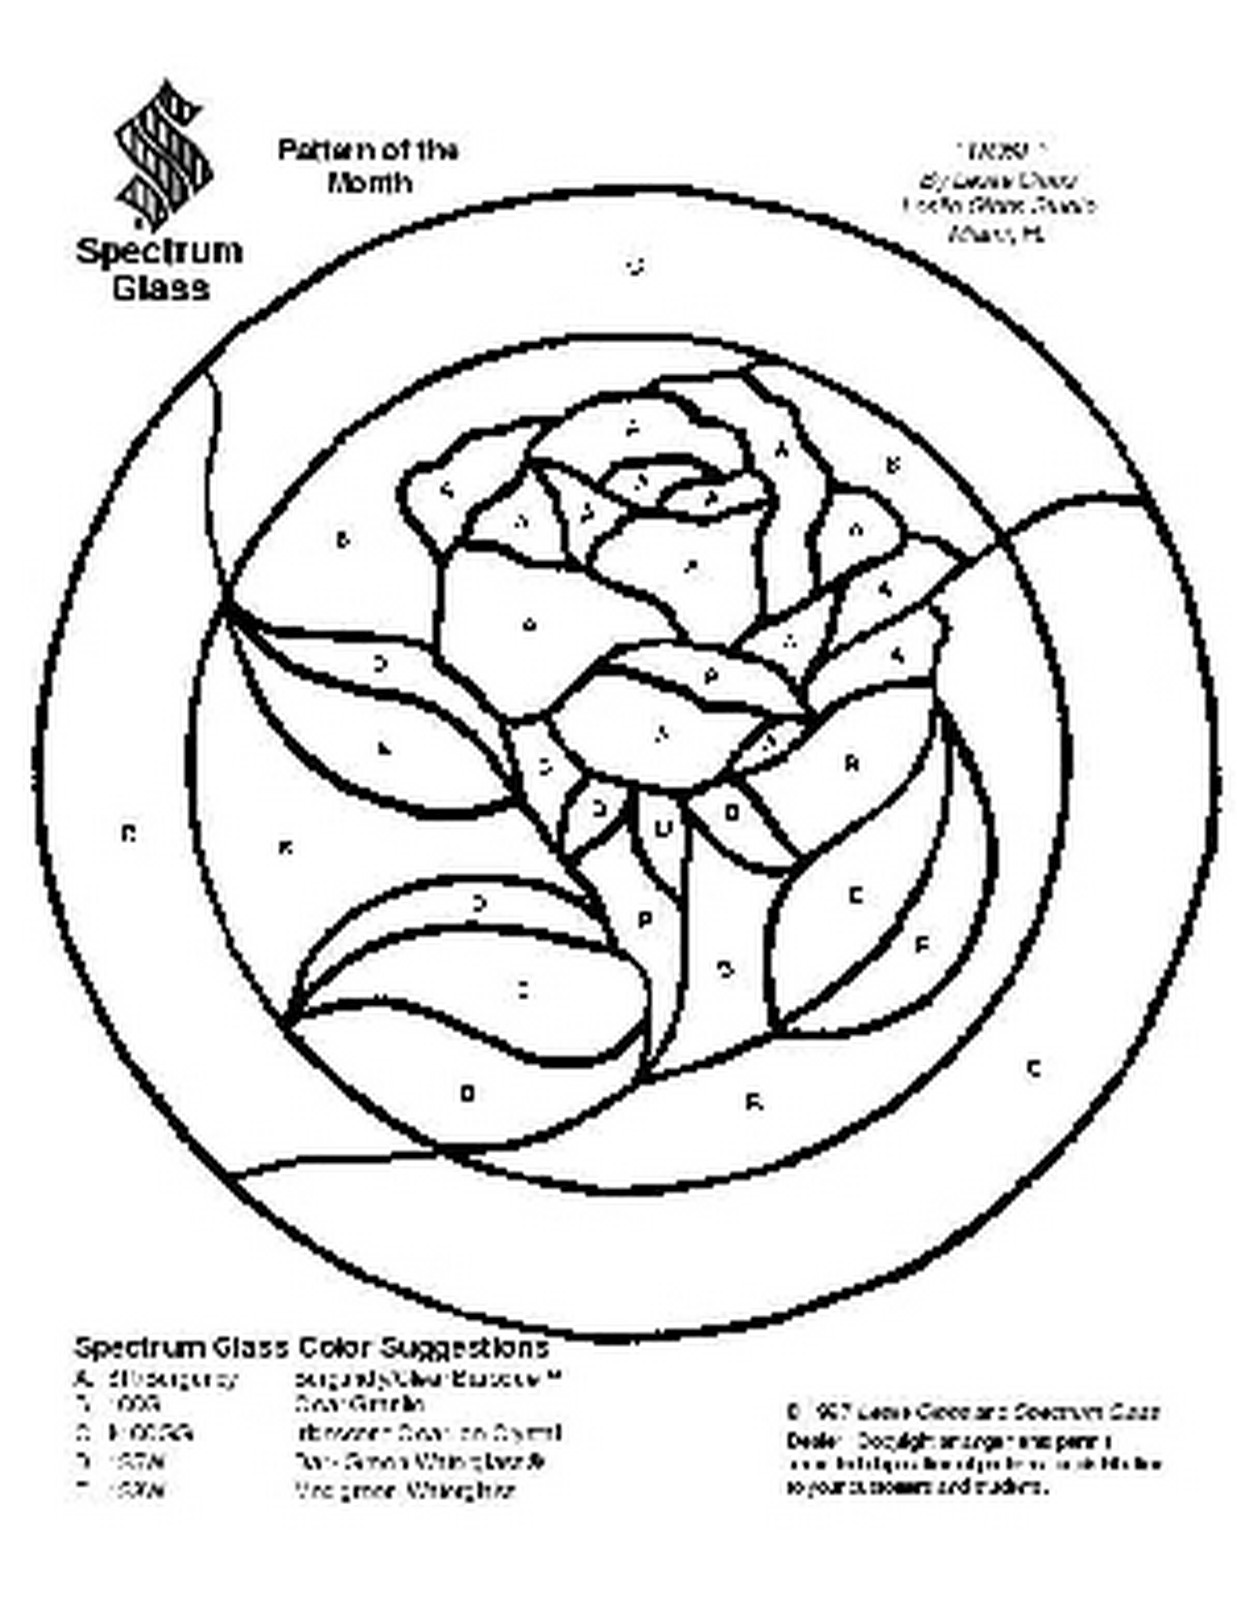 1237x1600 Free Stained Glass Pattern 2104 Rose Patterns By Spectrum